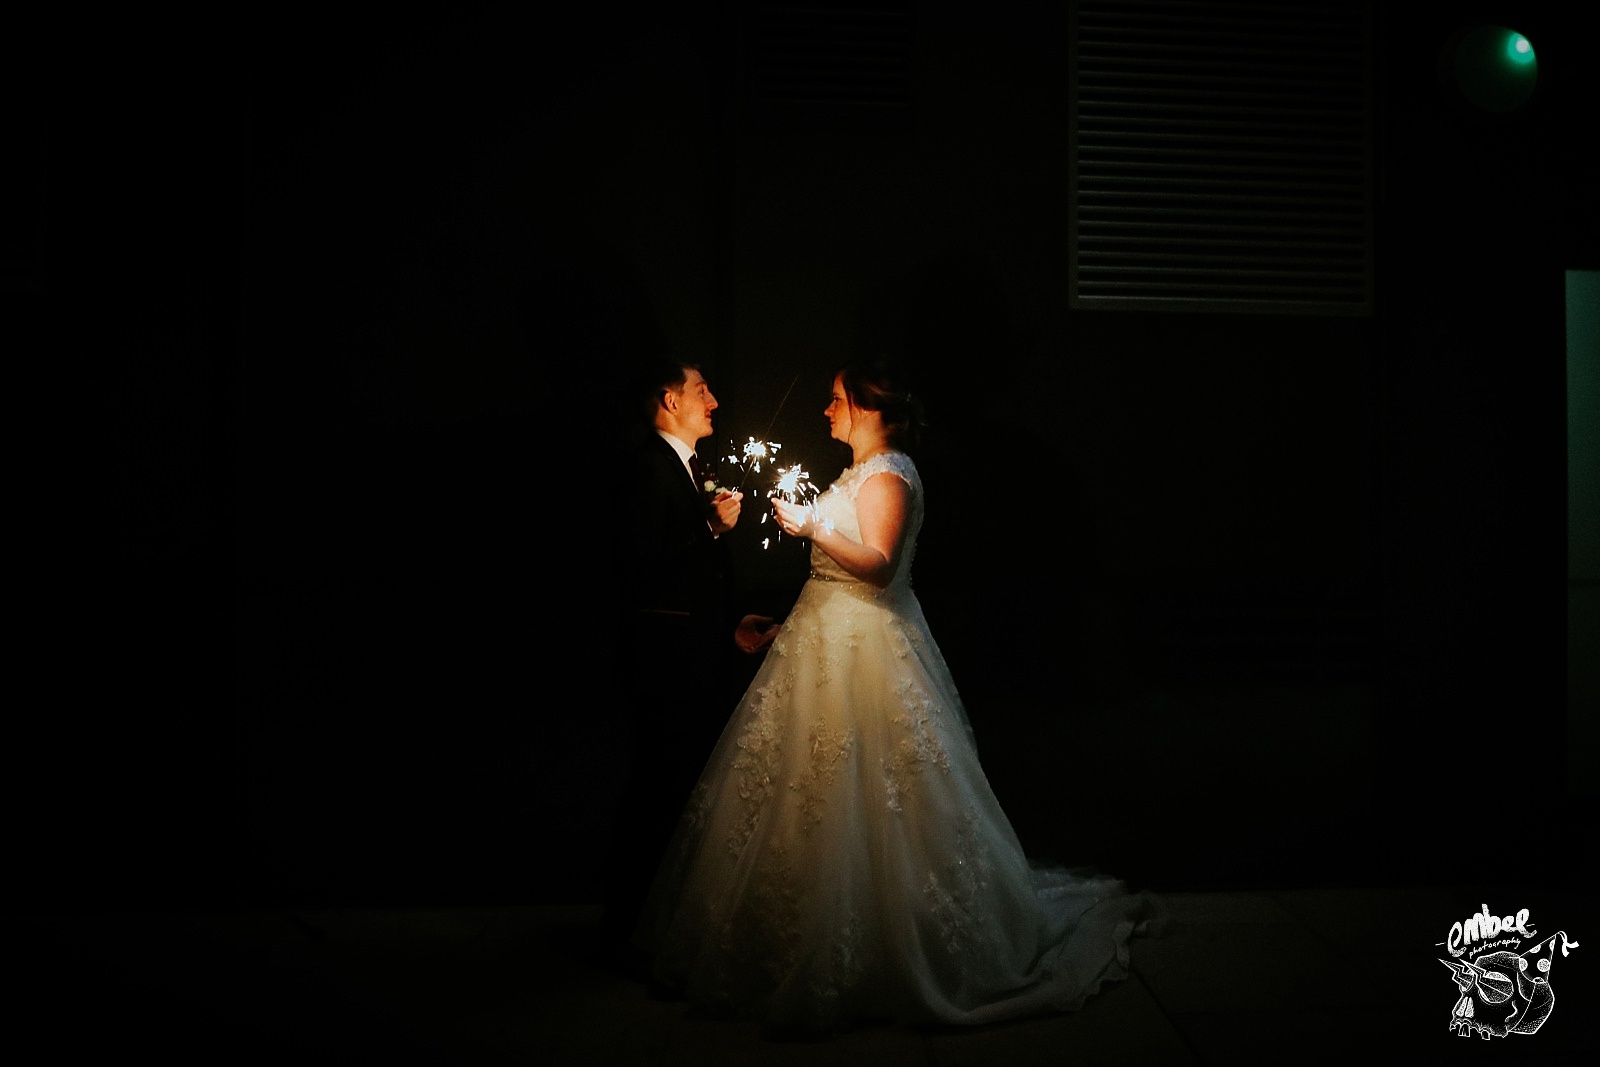 sparkler potrait with bride and groom